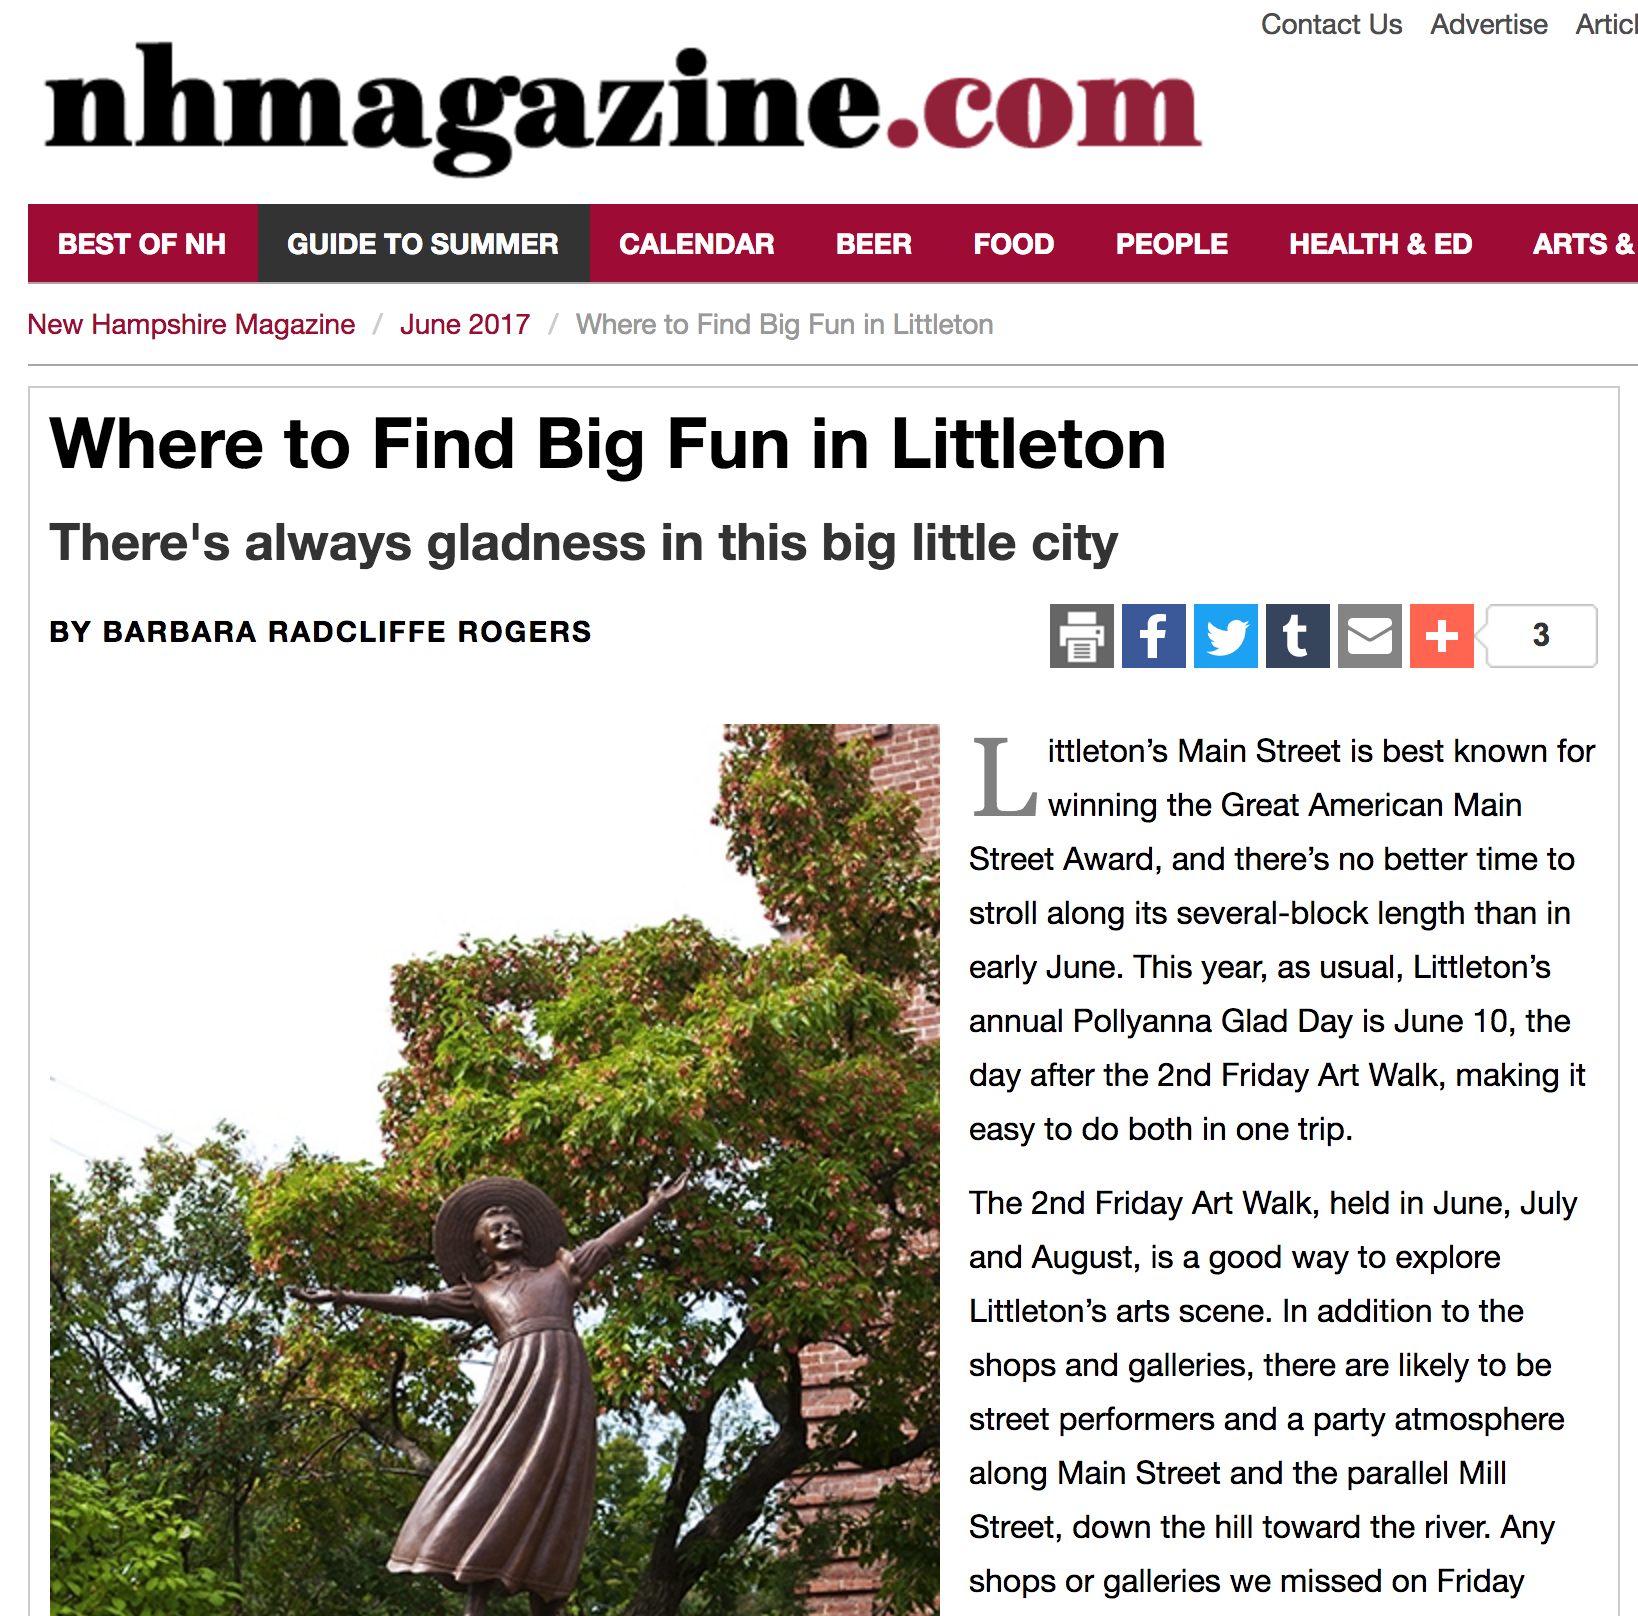 Where to Find Big Fun in Littleton